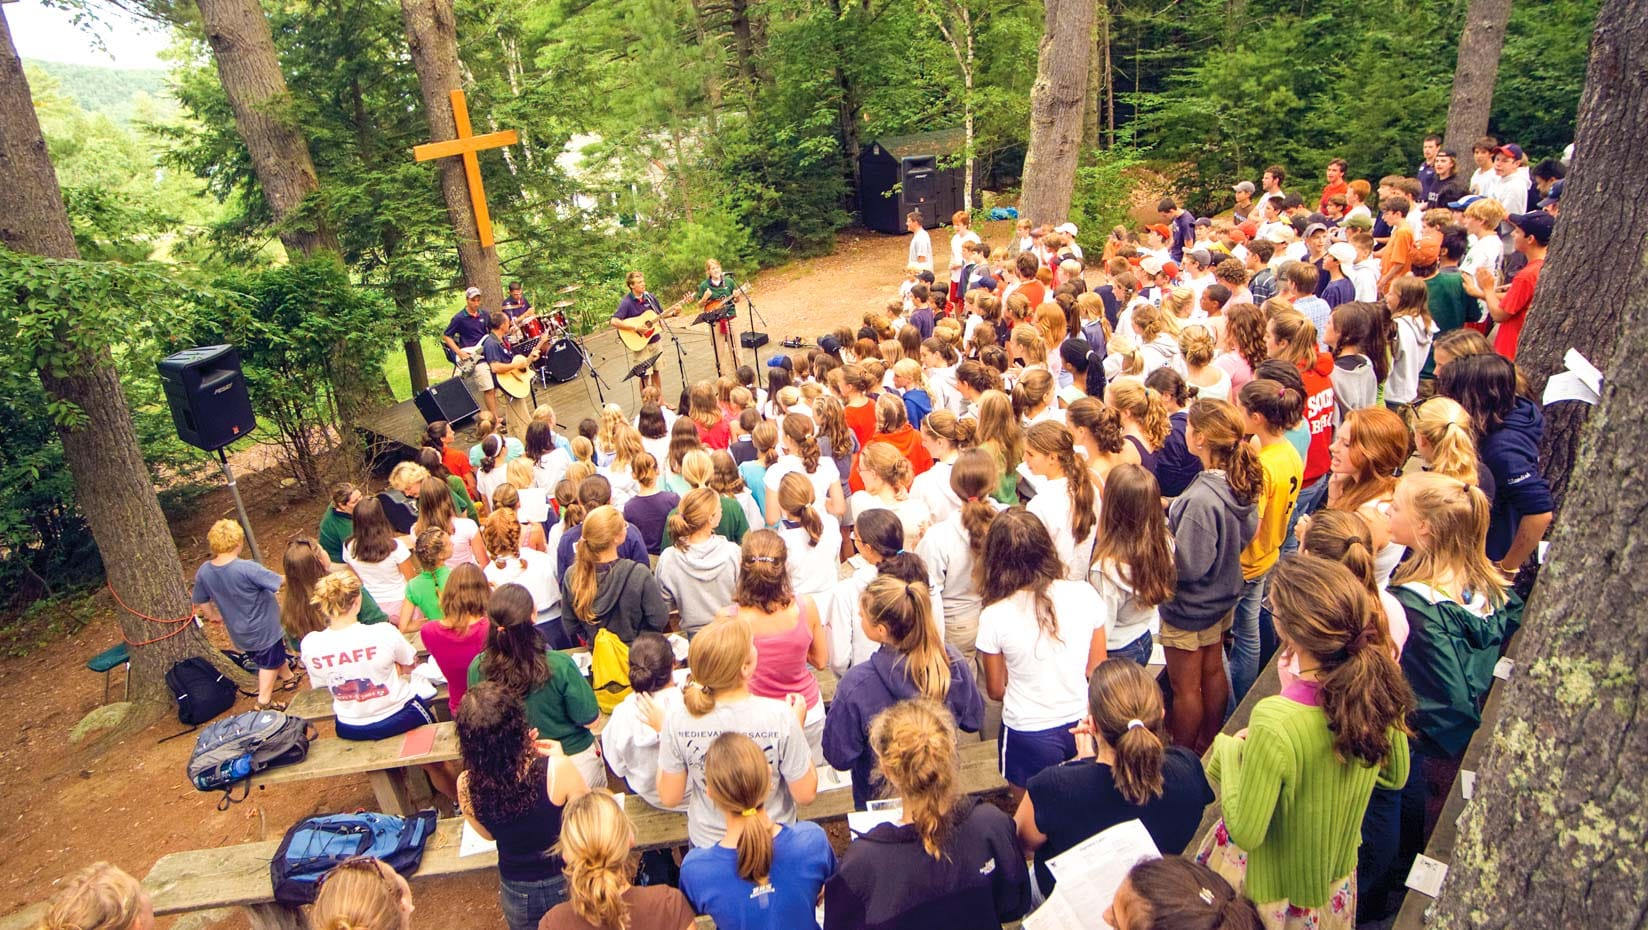 Deer Run campers at a outdoor prayer event